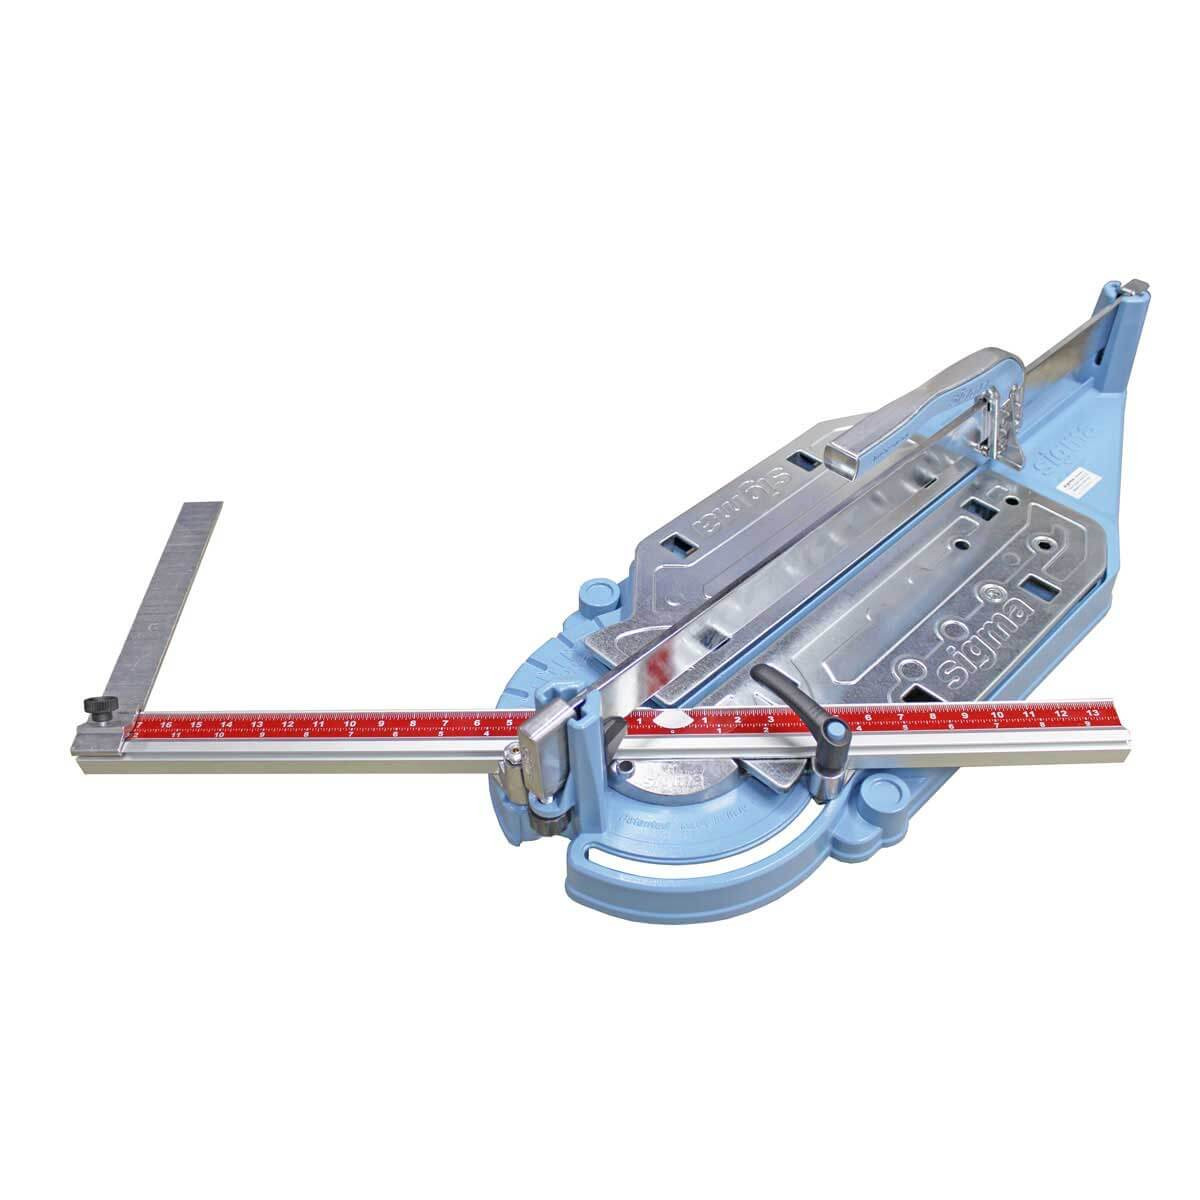 Sigma Pull Handle Tile Cutter 3G2